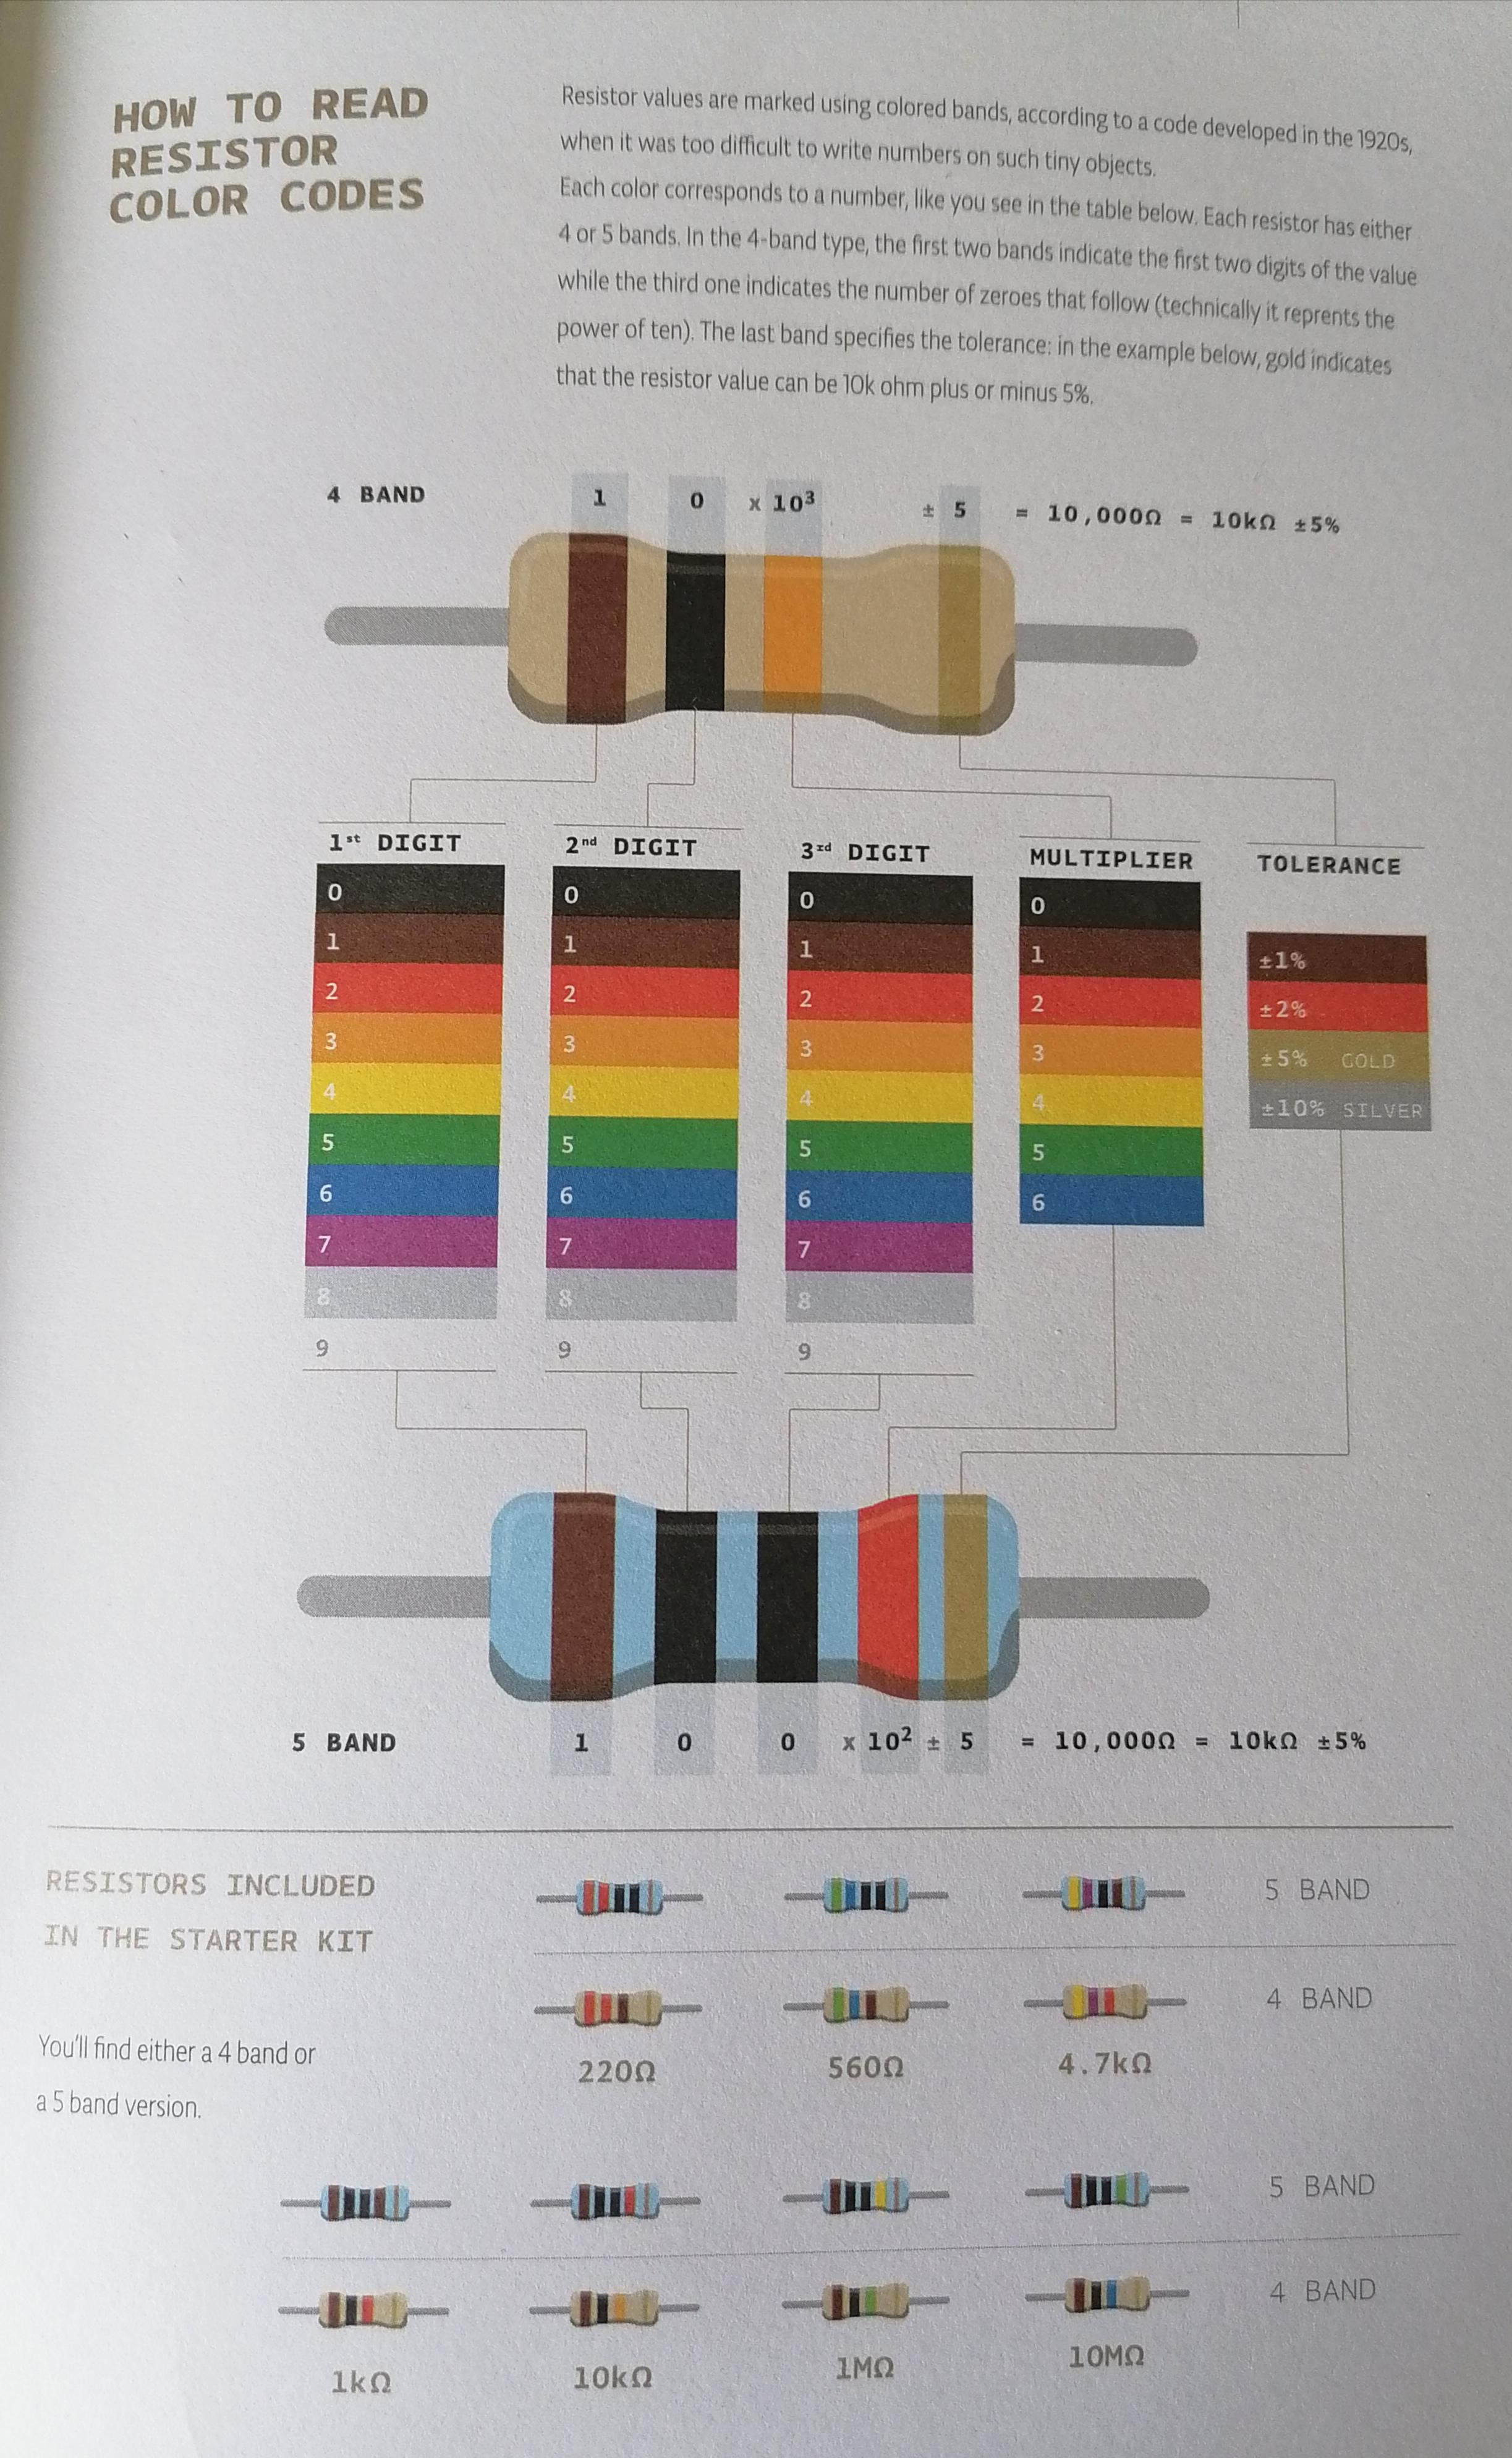 How To Read Resistor Color Codes Coolguides